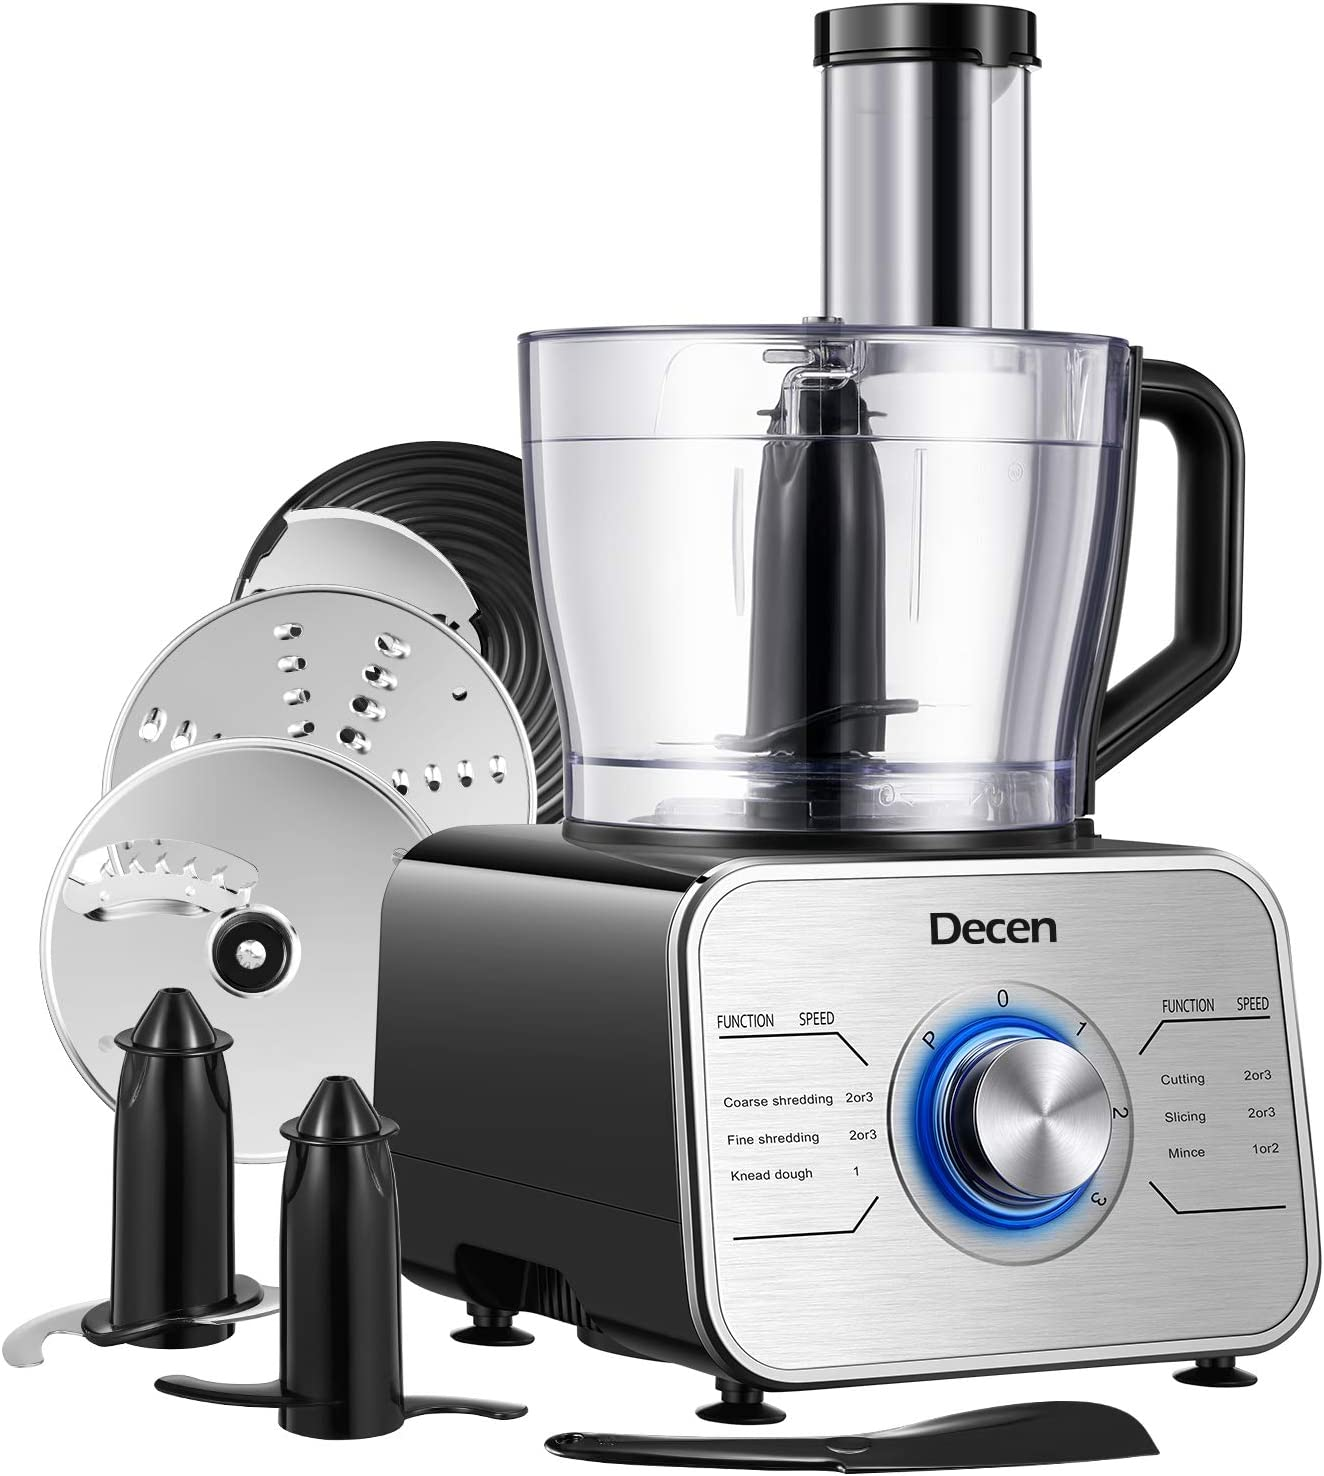 Decen 12-Cup Food Processor & Vegetable Chopper, Electric Food Chopper with LED light, 3 Speeds 6 Main Functions with Chopper Blade, Dough Blade, Shredder, Slicing Attachments, Silver